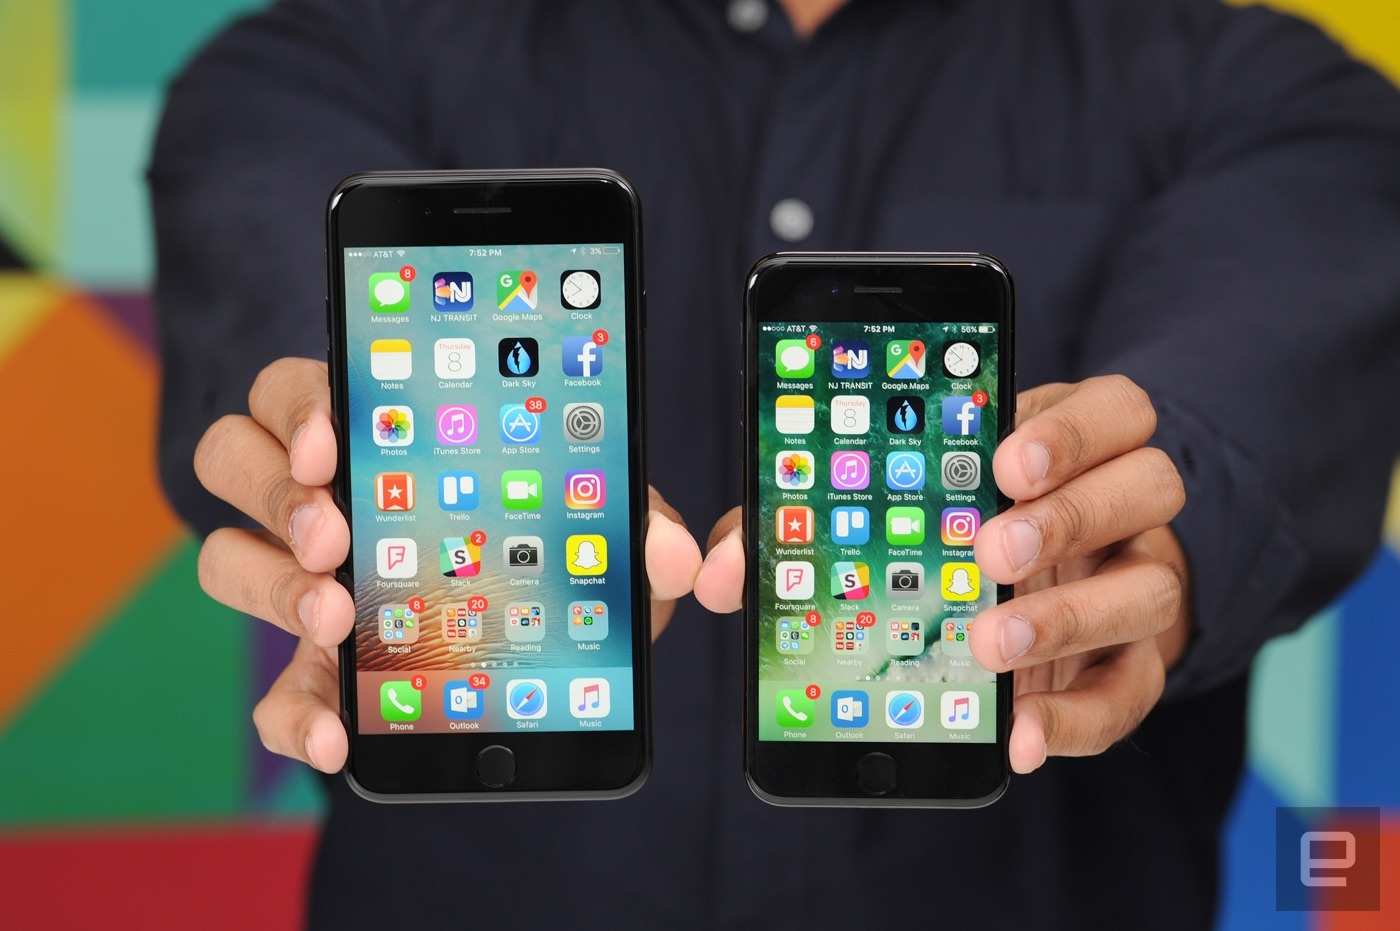 The iPhone's hardware may be closed, but iOS is more open than ever